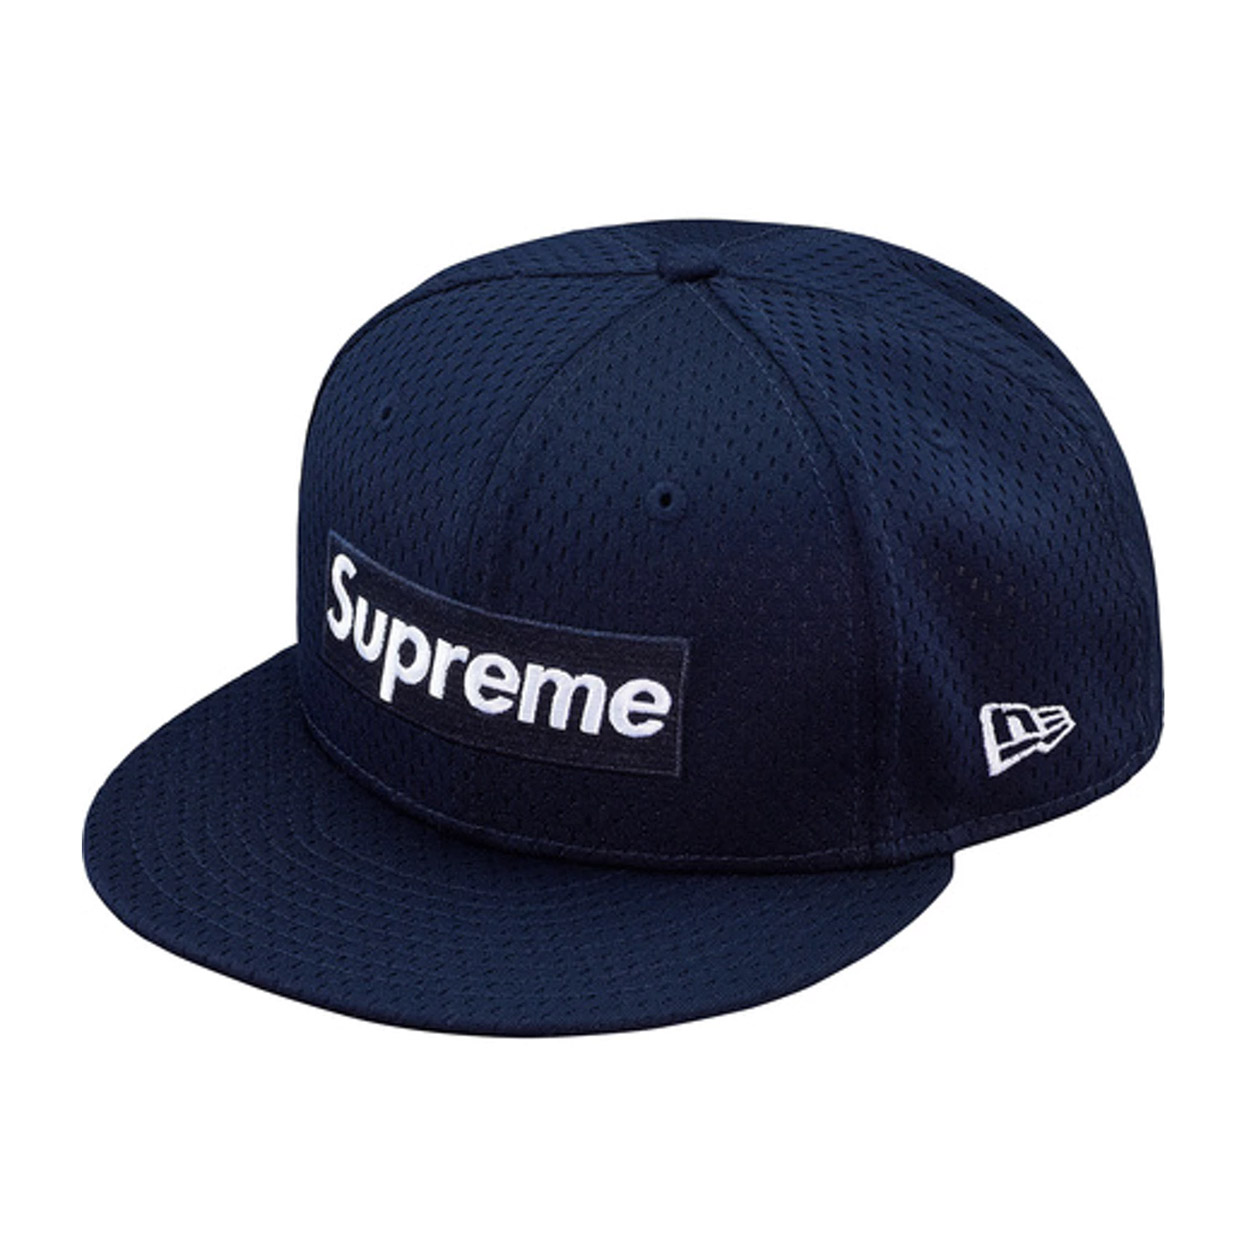 Supreme New Era Mesh Box Logo Cap Navy  cab8bb2b8